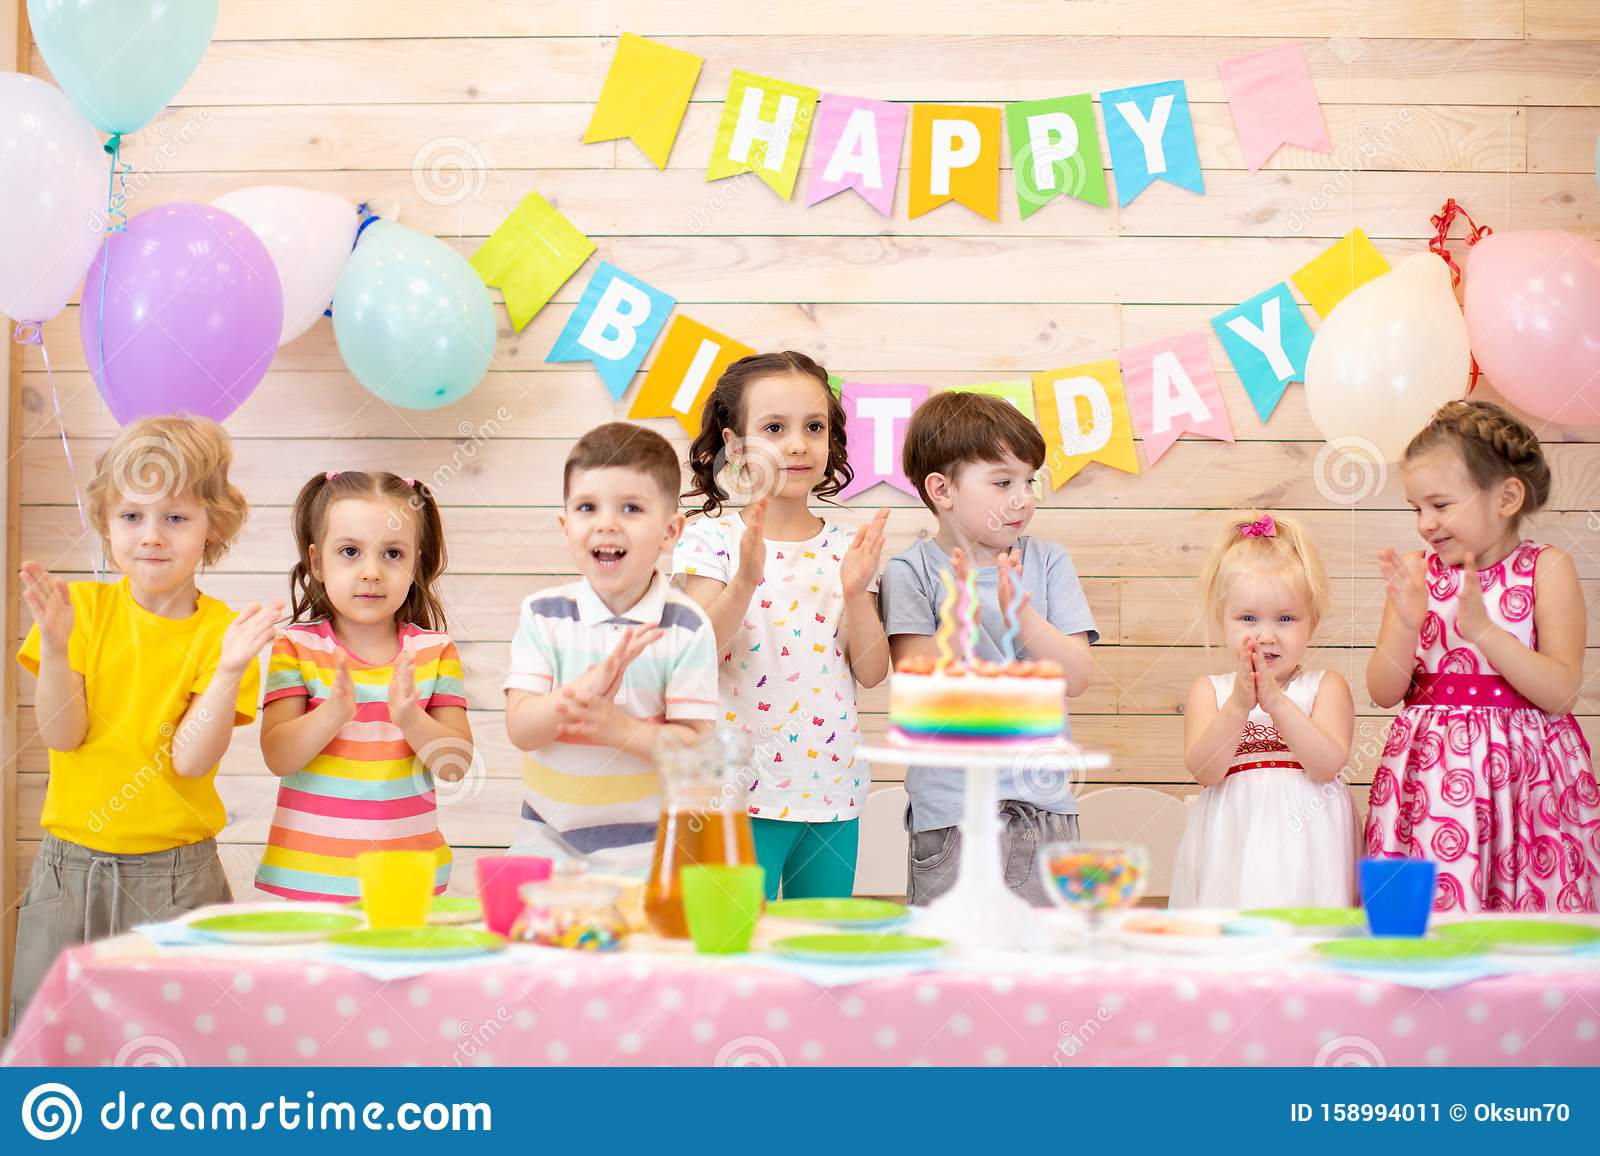 Strange Group Of Kids Clap Their Hands Near Birthday Cake Balloons On Funny Birthday Cards Online Chimdamsfinfo